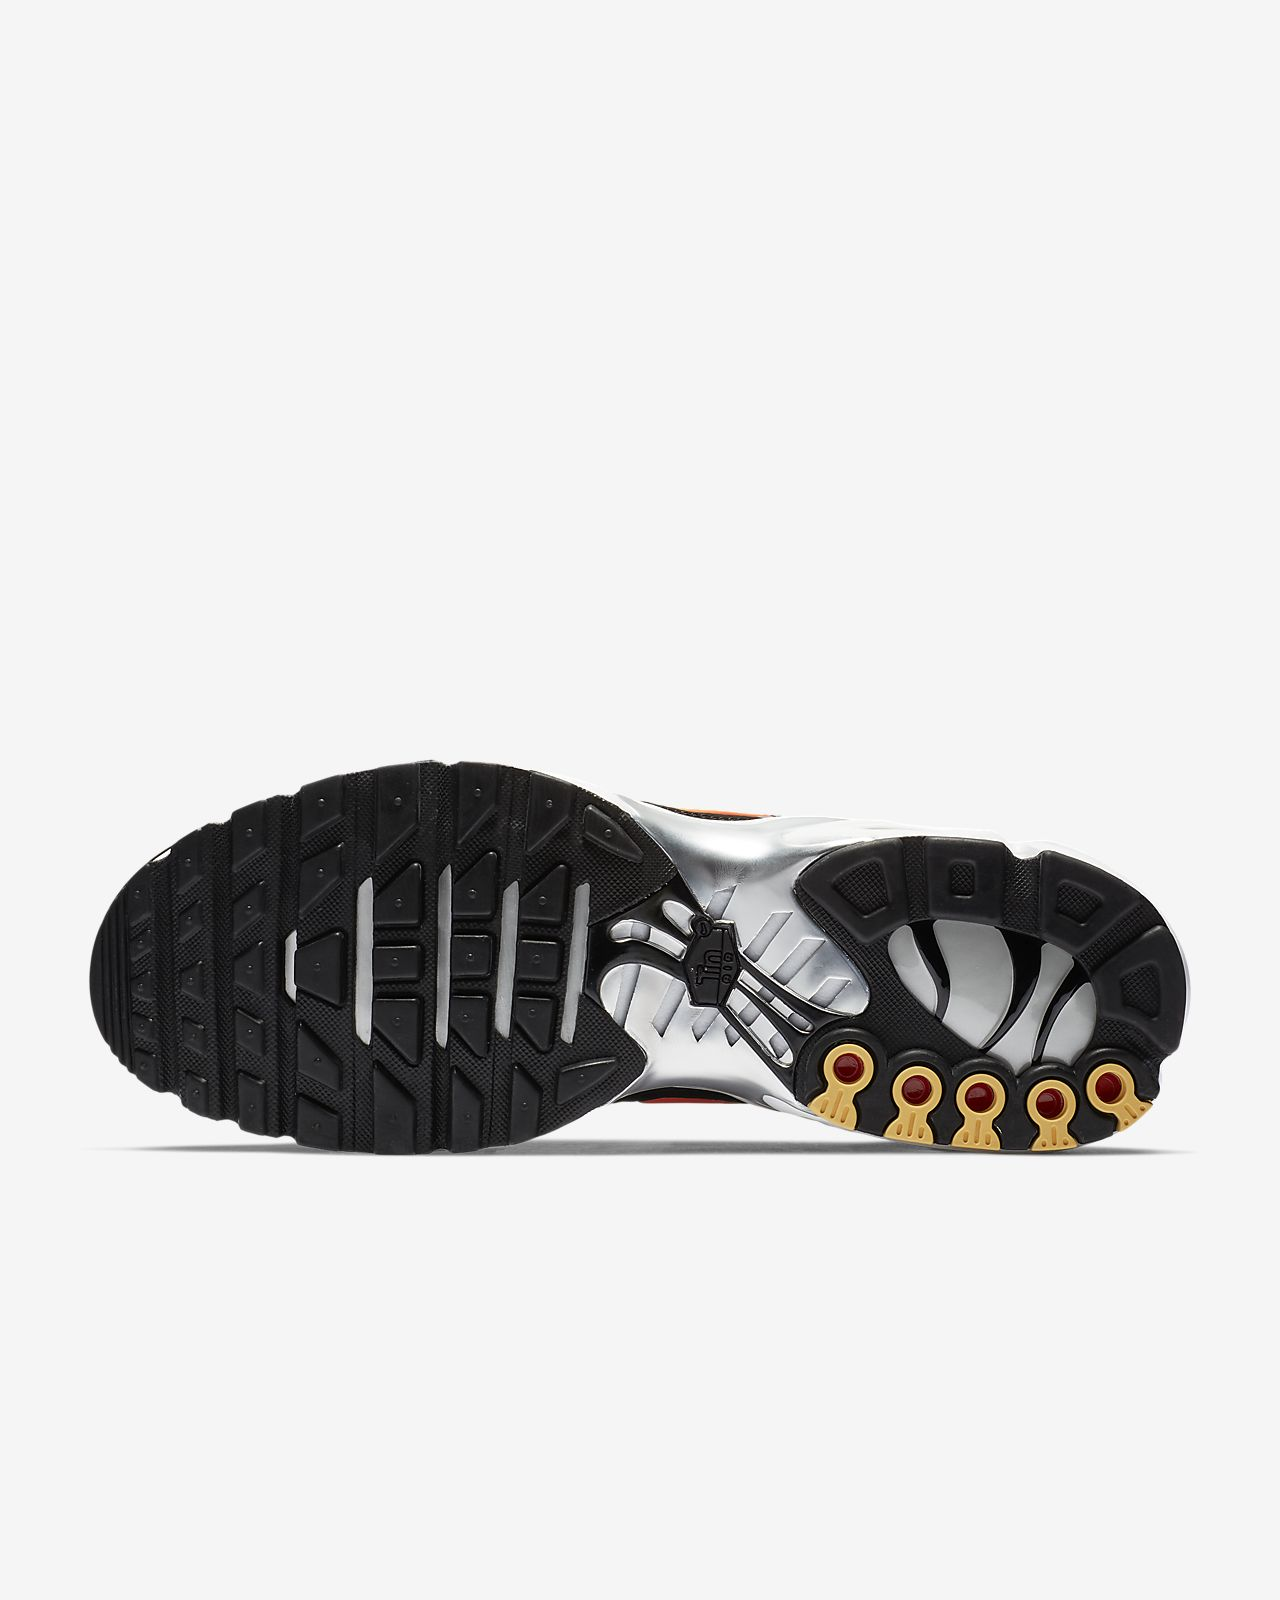 huge selection of d9aba 55182 ... Chaussure Nike Air Max Plus TN SE pour Homme